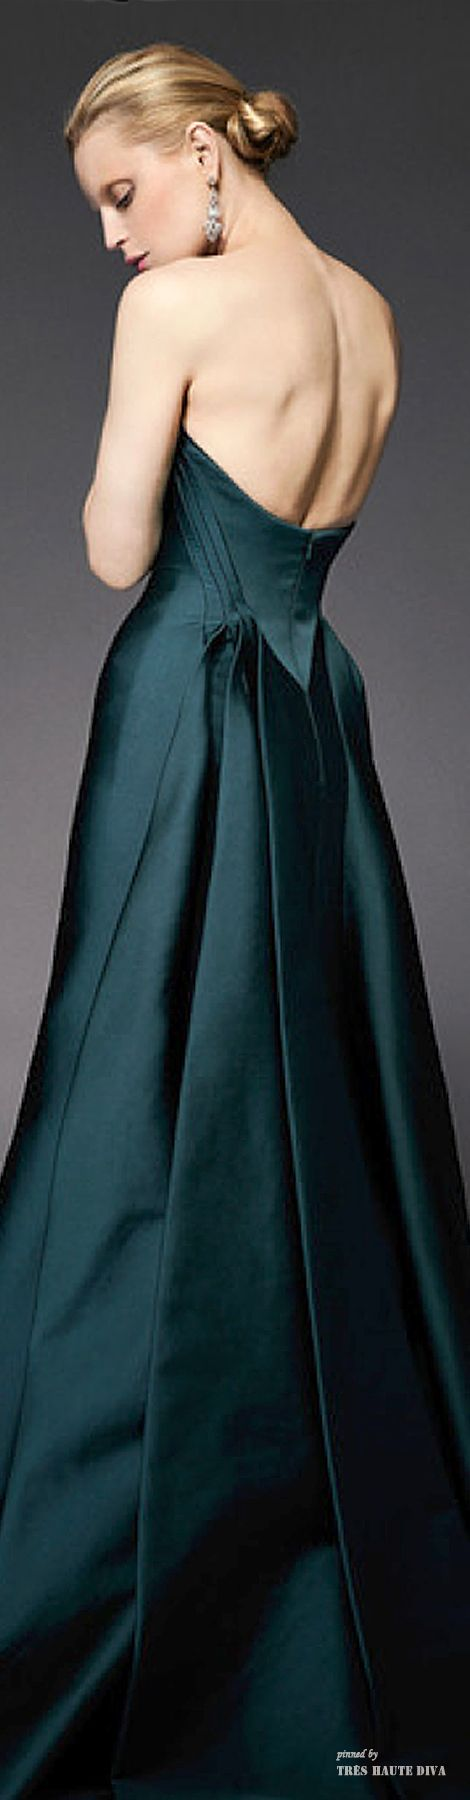 Zac Posen Resort 2015./¸.•´¸.•*´¨) ¸.•*¨) (¸.•´ (¸.•` ¤ Be Beautiful/ Weddings Ideas for you Cuqui Soto